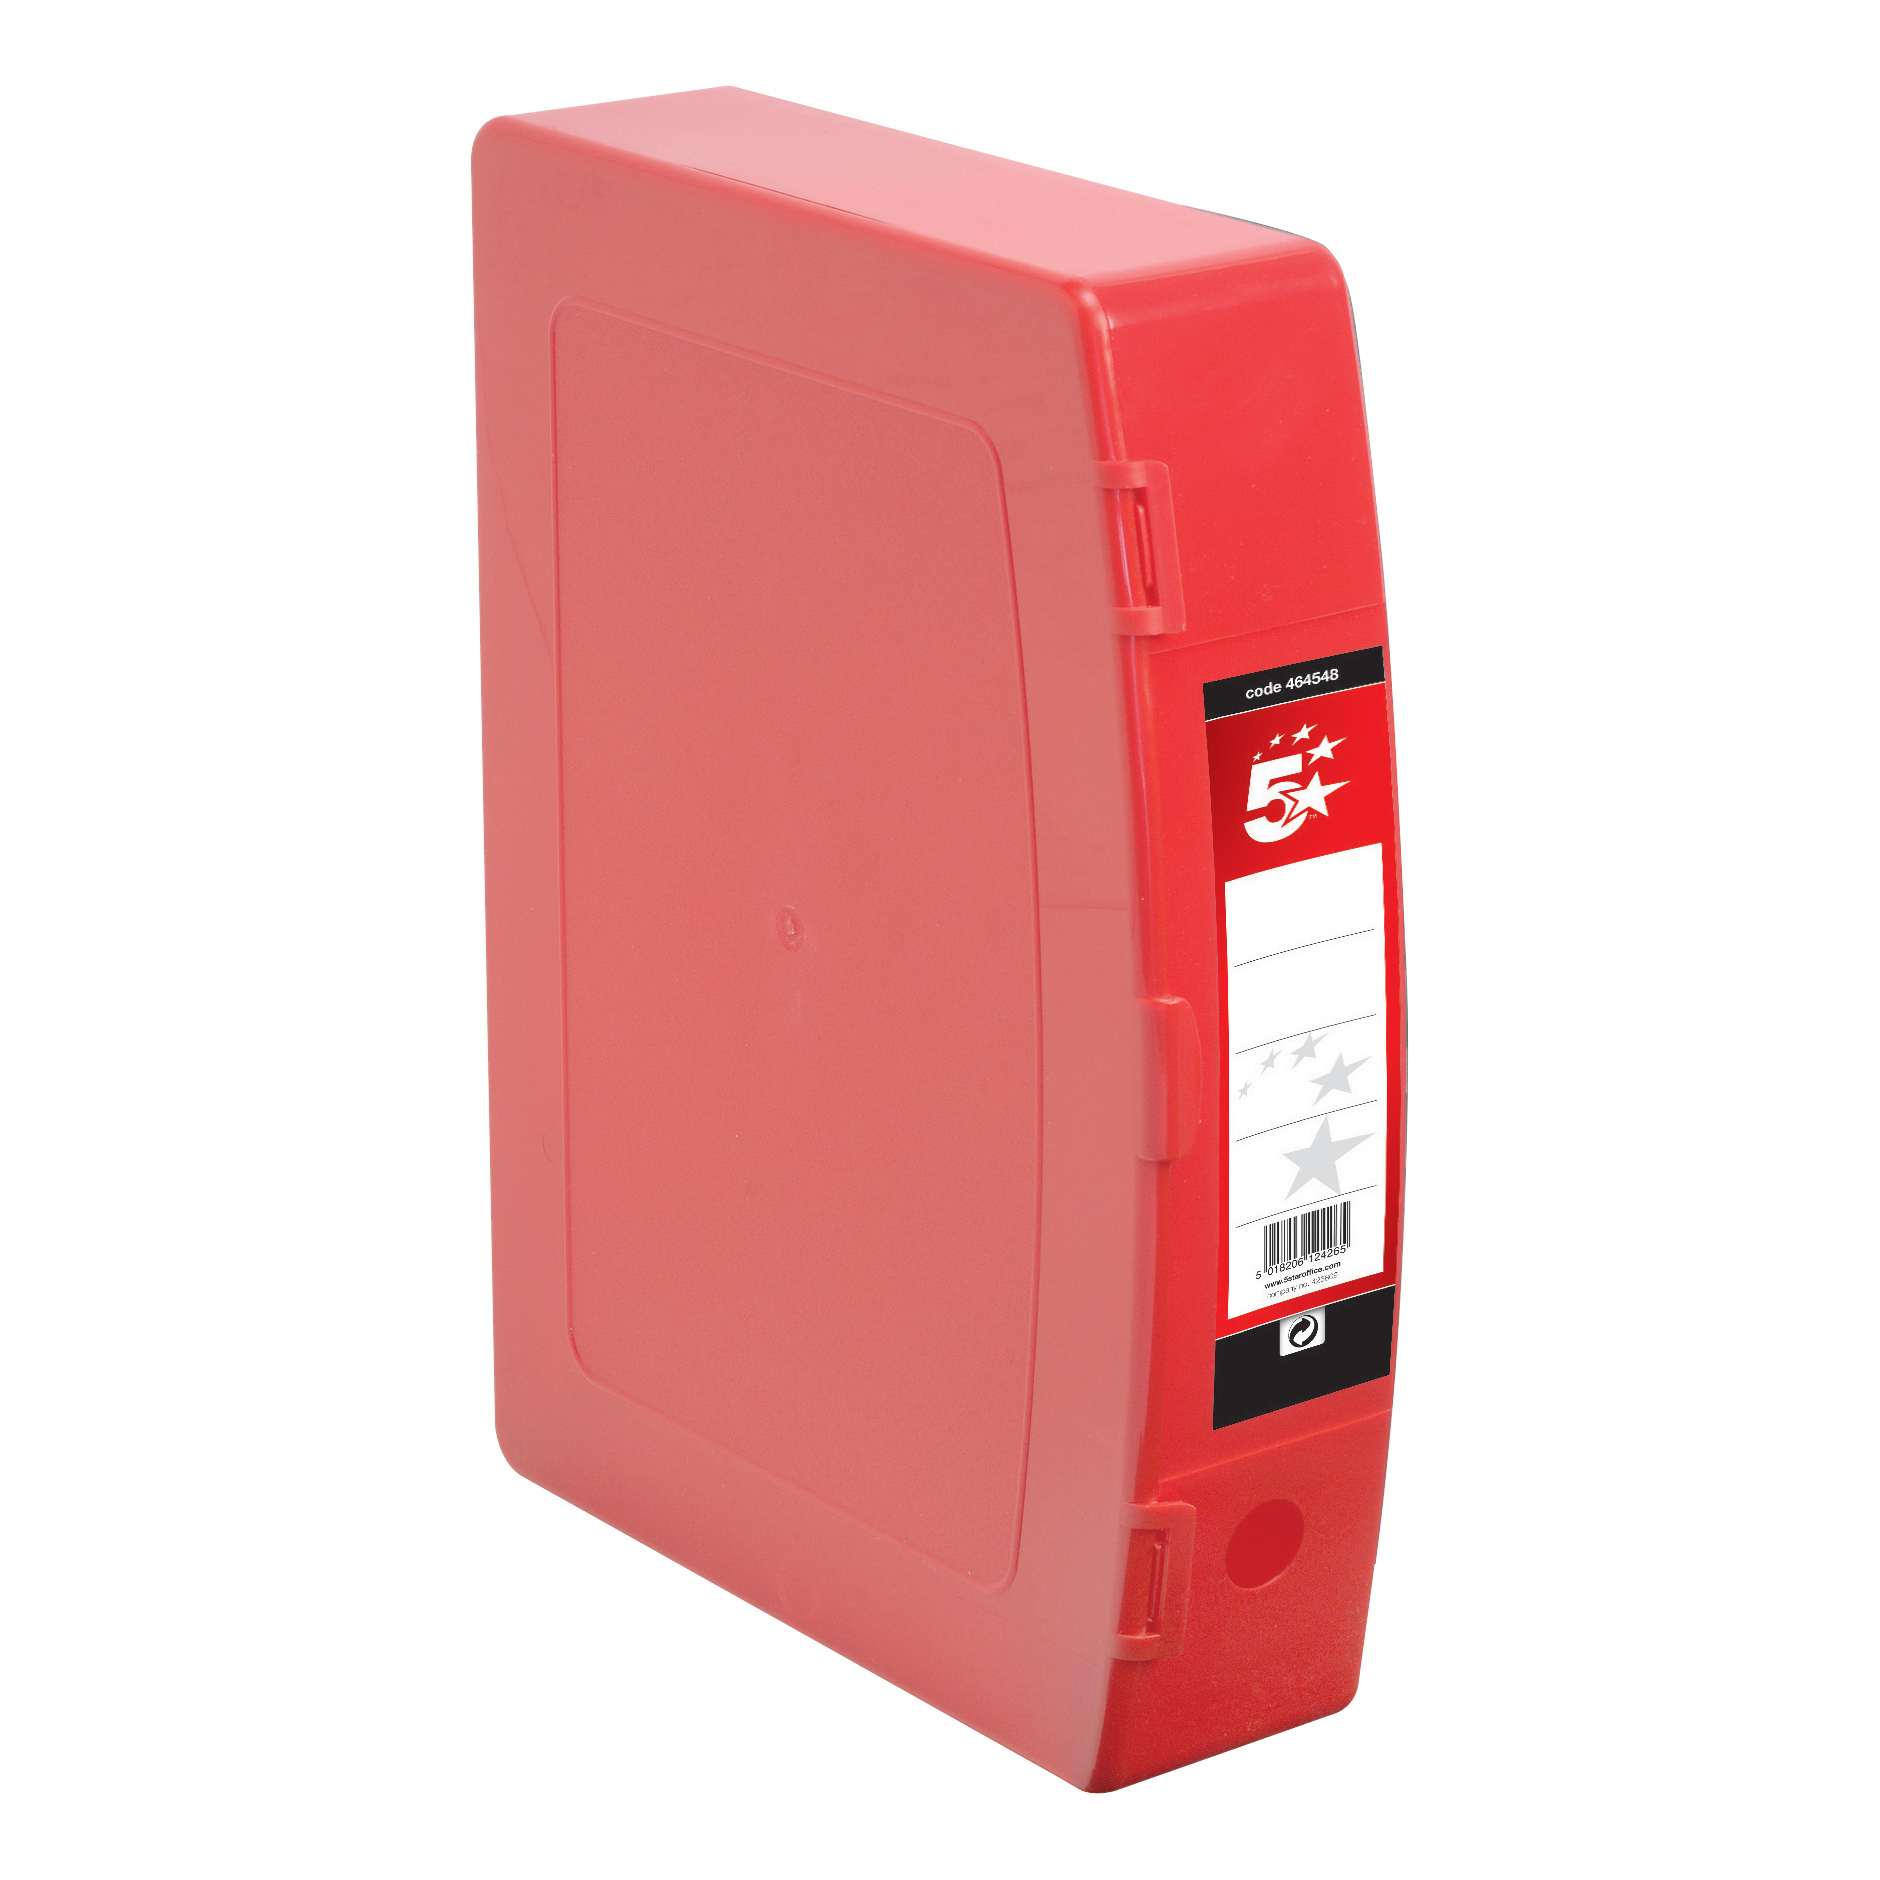 Box Files 5 Star Office Box File Capacity 70mm Polypropylene Twin Clip Lock Foolscap Red